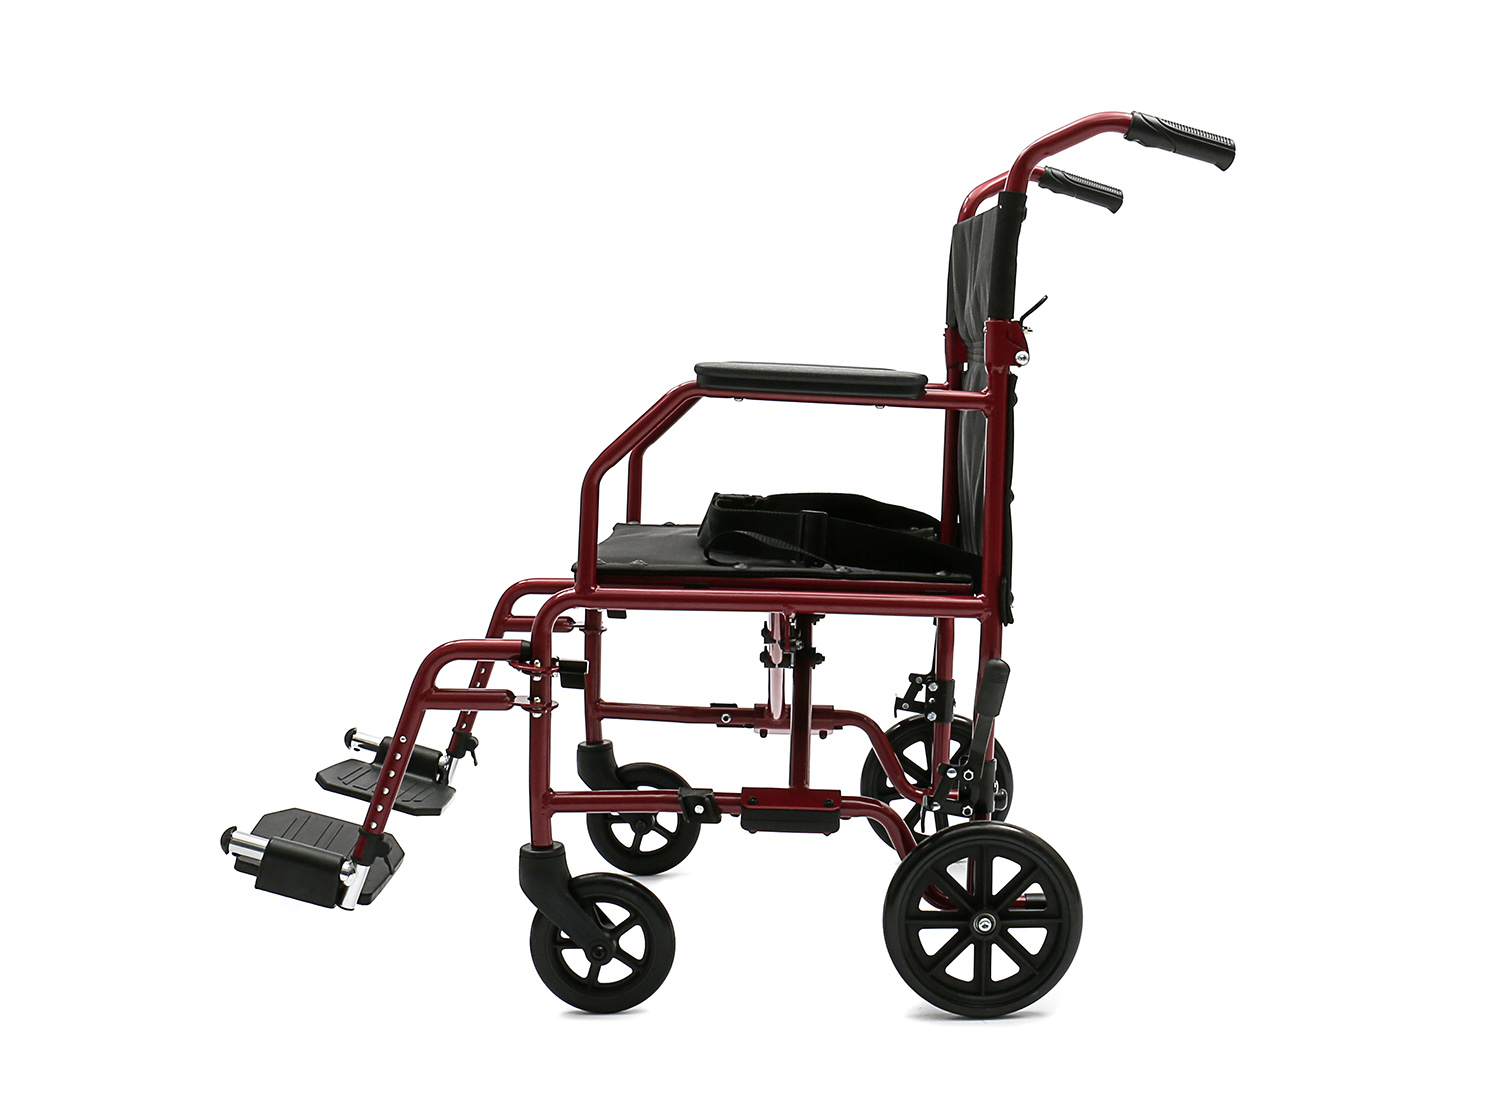 YJ-BL09 Steel Transport Wheelchair with attendant brake